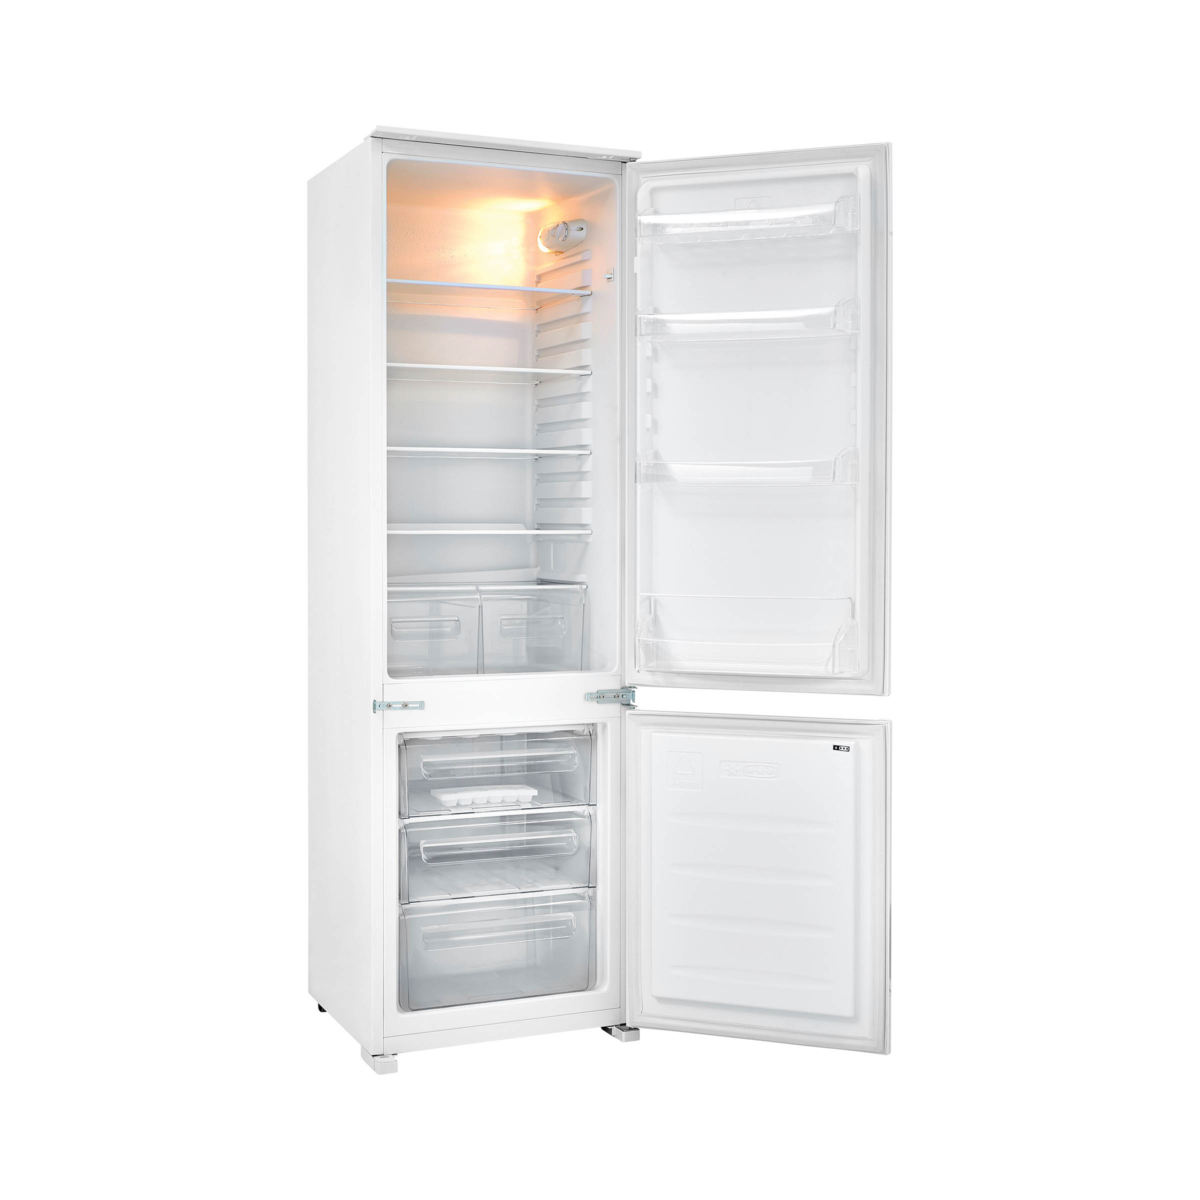 Best integrated fridge freezer